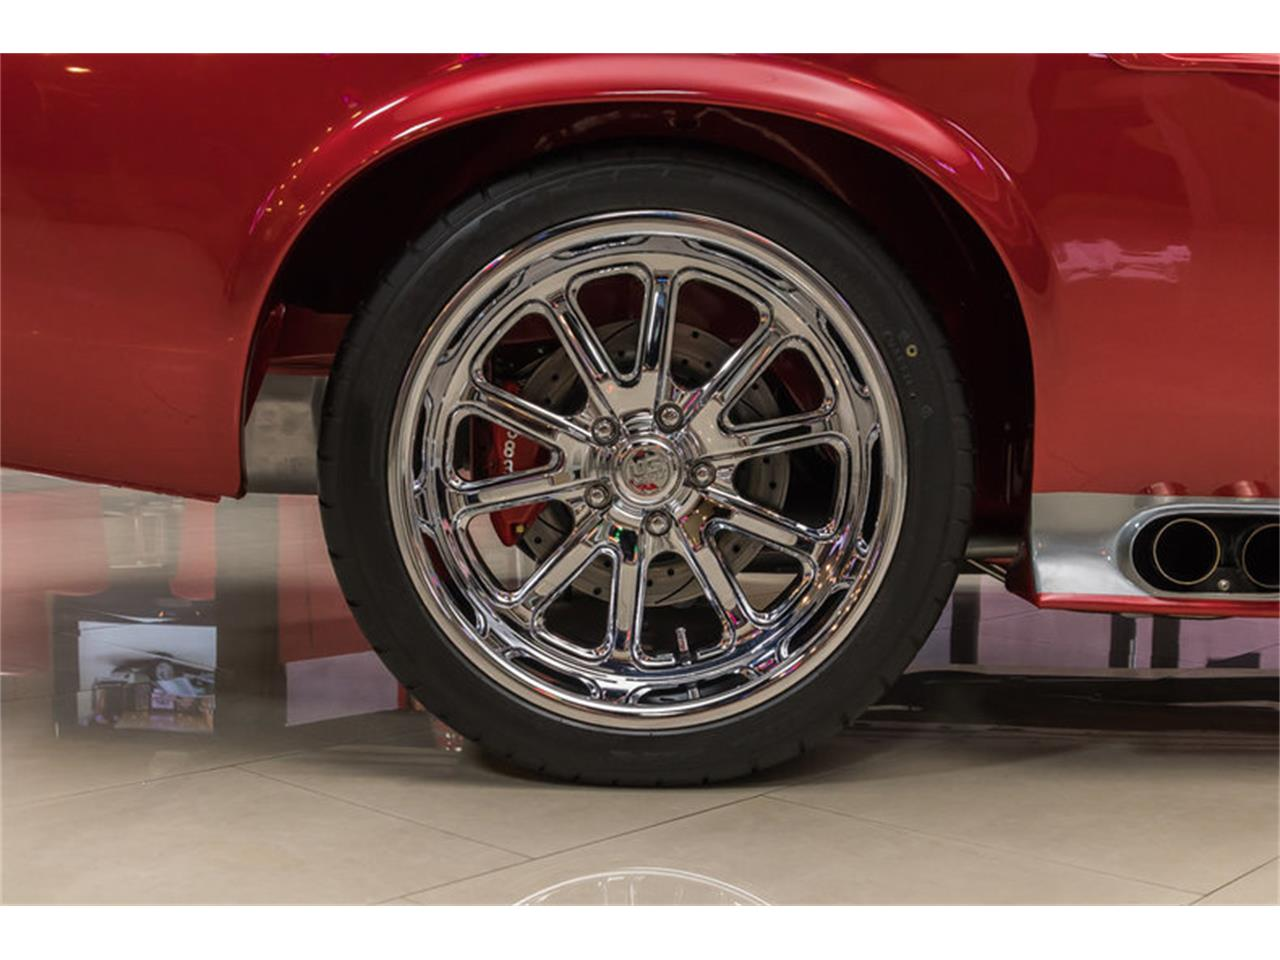 Large Picture of 1969 Ford Mustang Fastback Restomod - $194,900.00 - L6C8